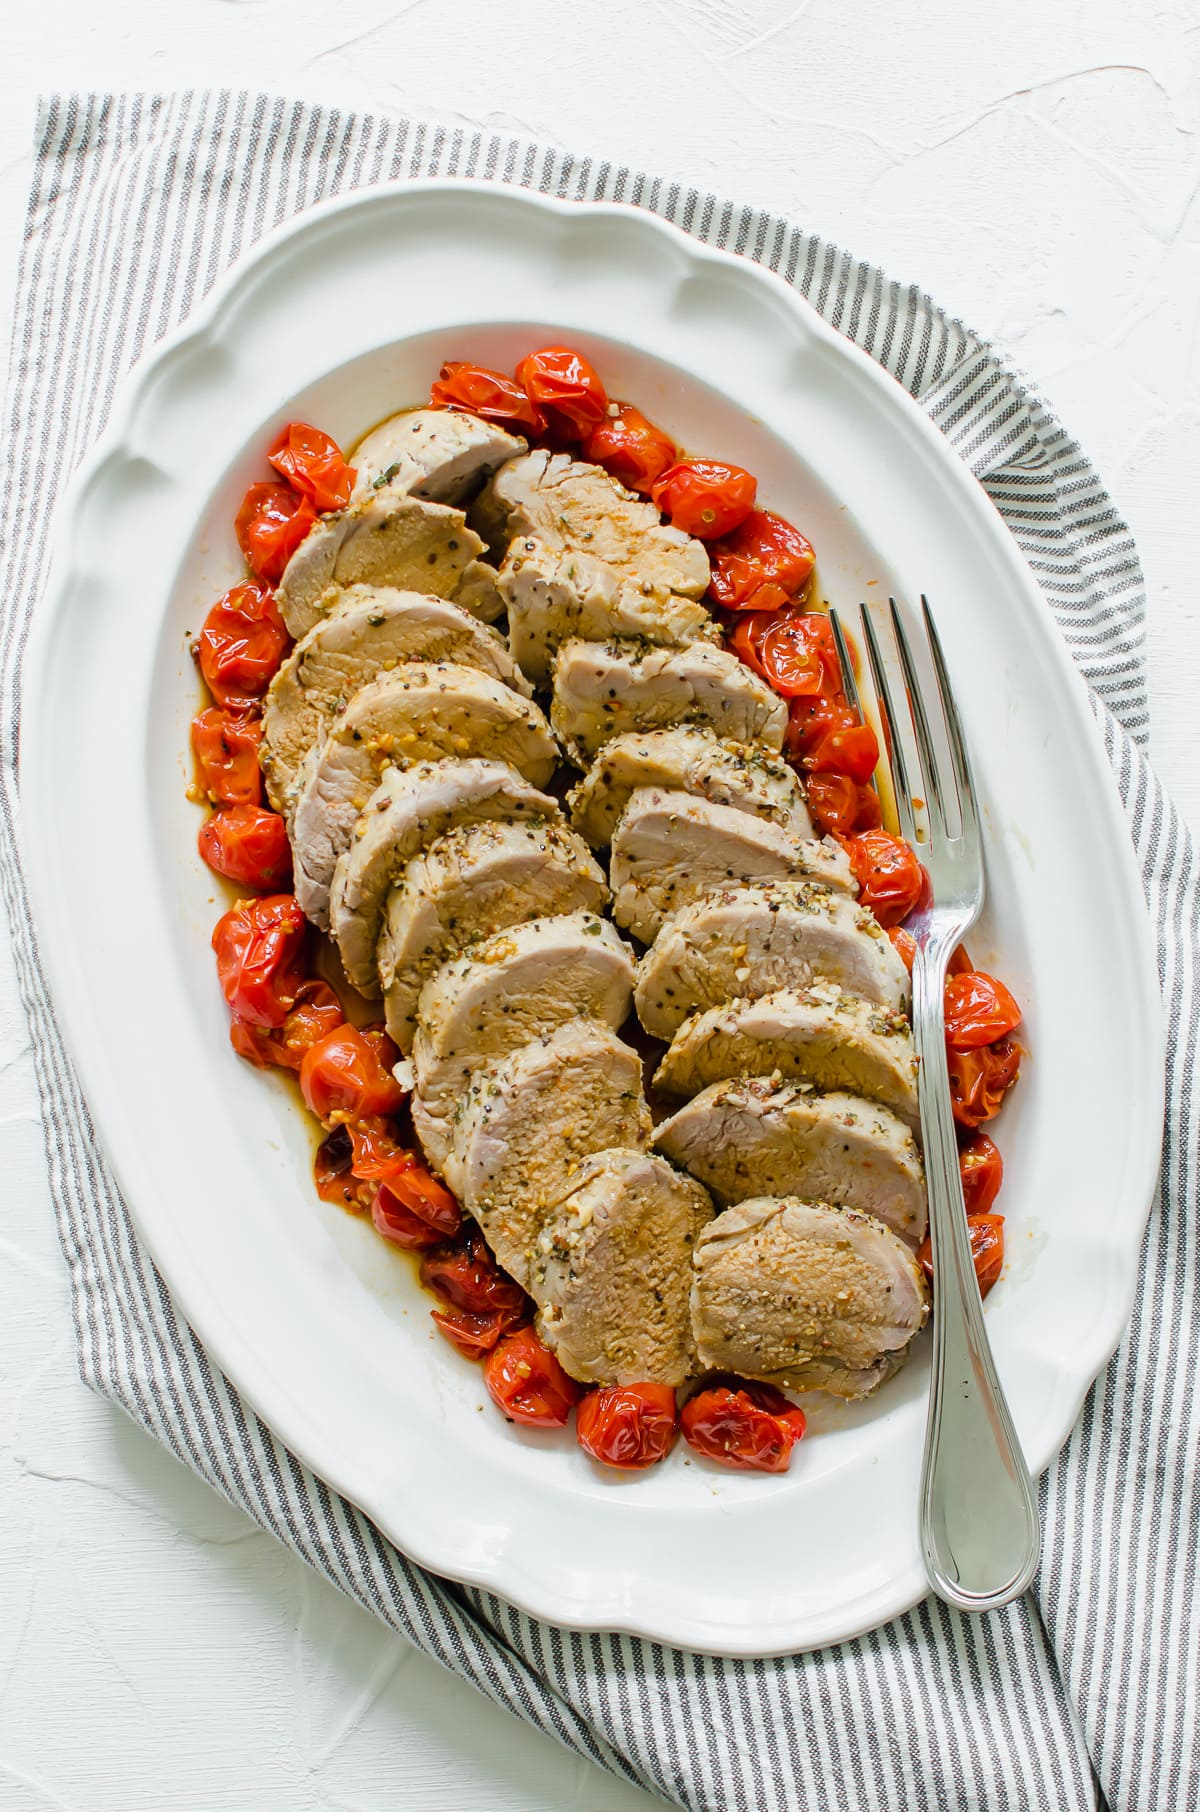 Slices of Tuscan roasted pork surrounded by roasted tomatoes on a white platter.